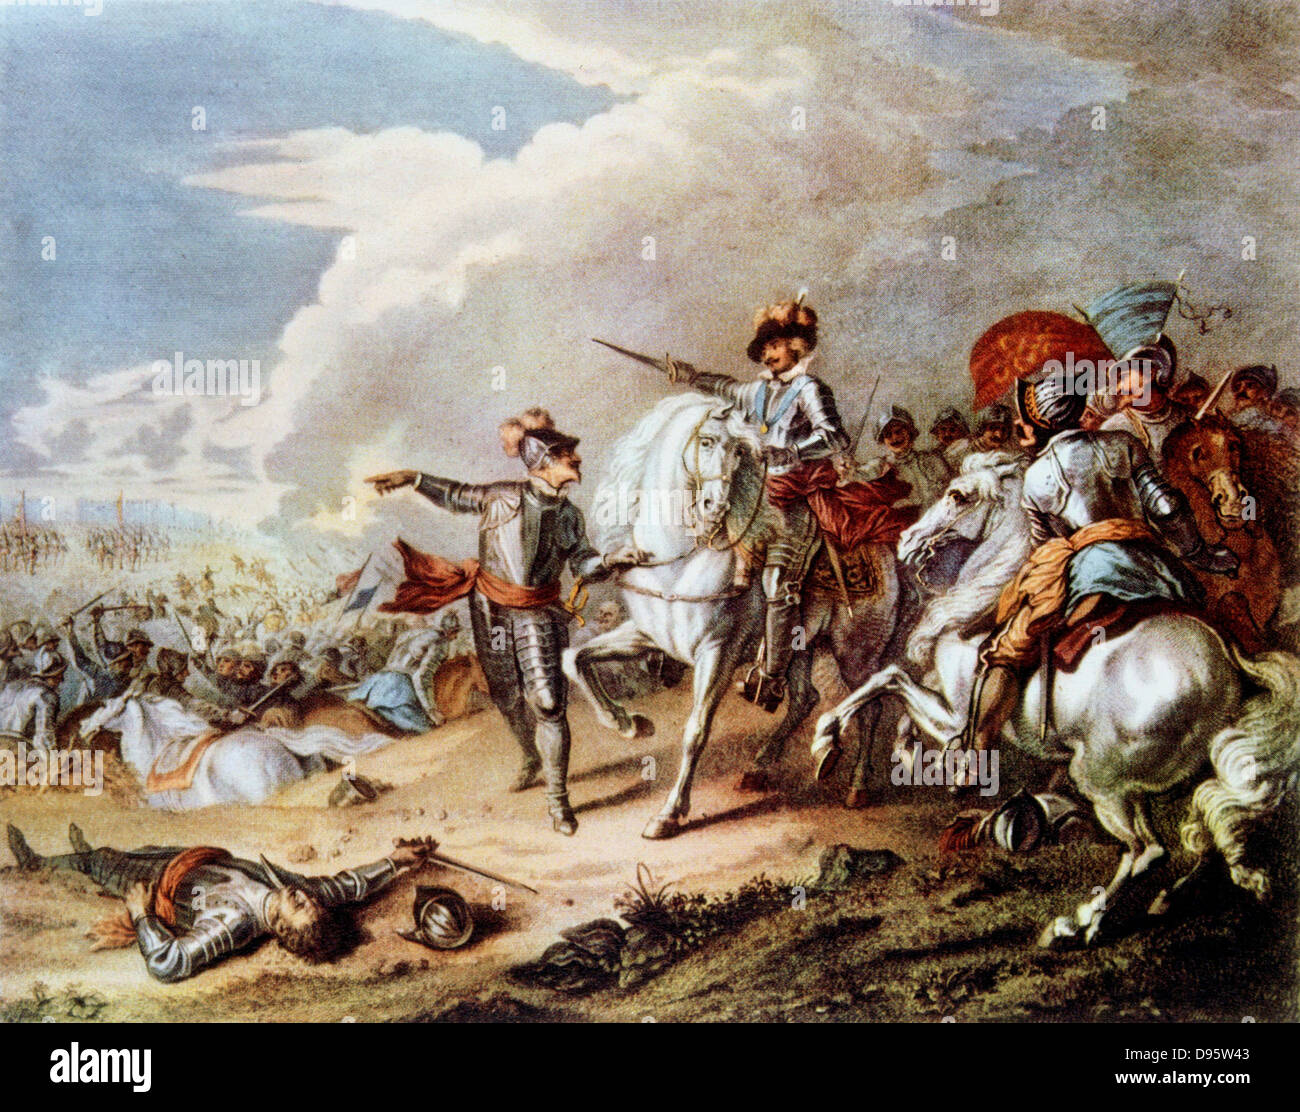 English Civil Wars: Battle of Naseby 14 June 1645. Decisive victory over Royalists by Parliamentarians under Fairfax - Stock Image